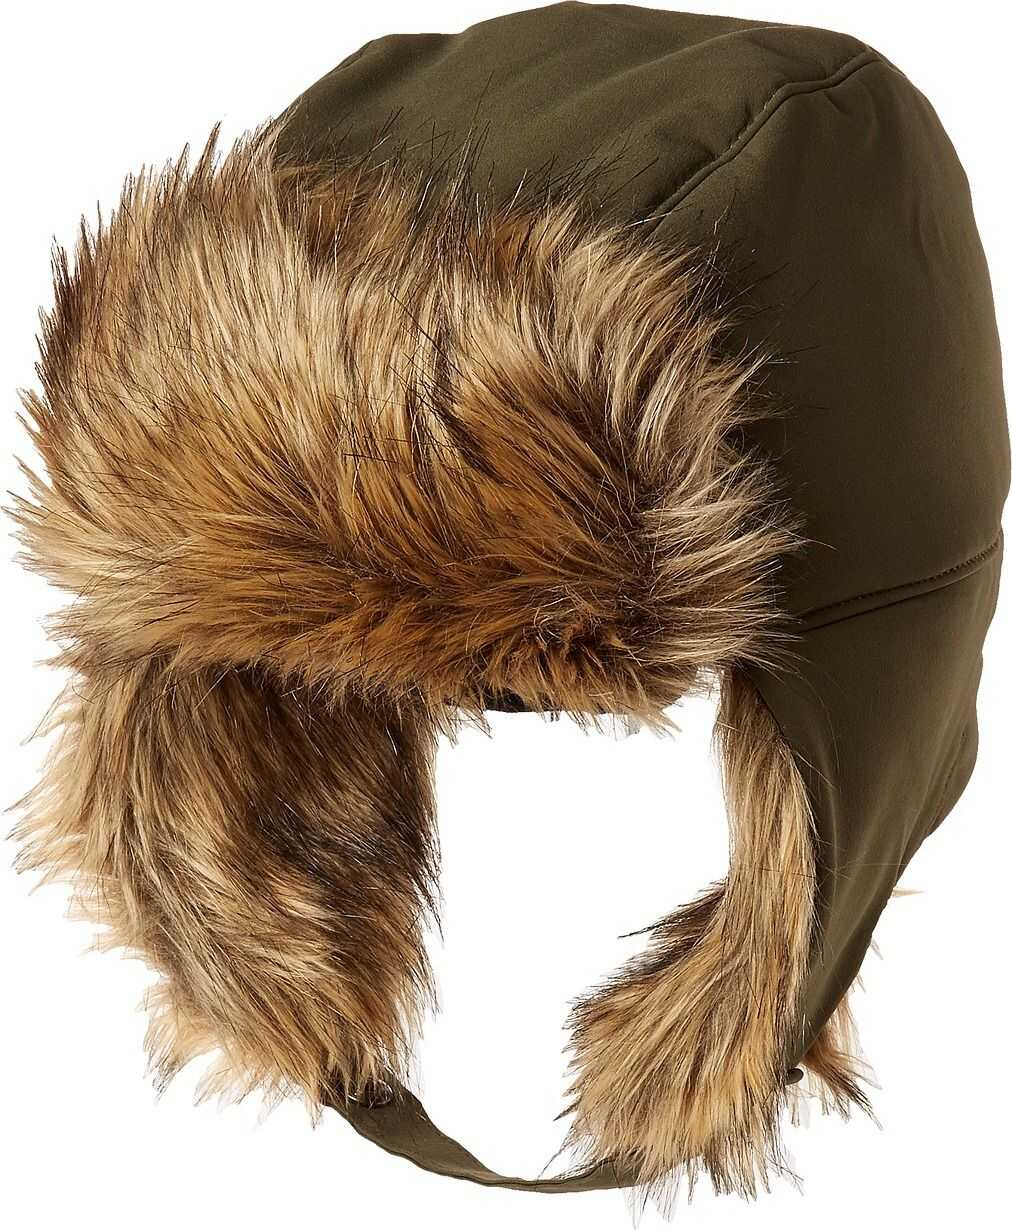 Columbia Winter Challenger™ Trapper Peatmoss/Brown